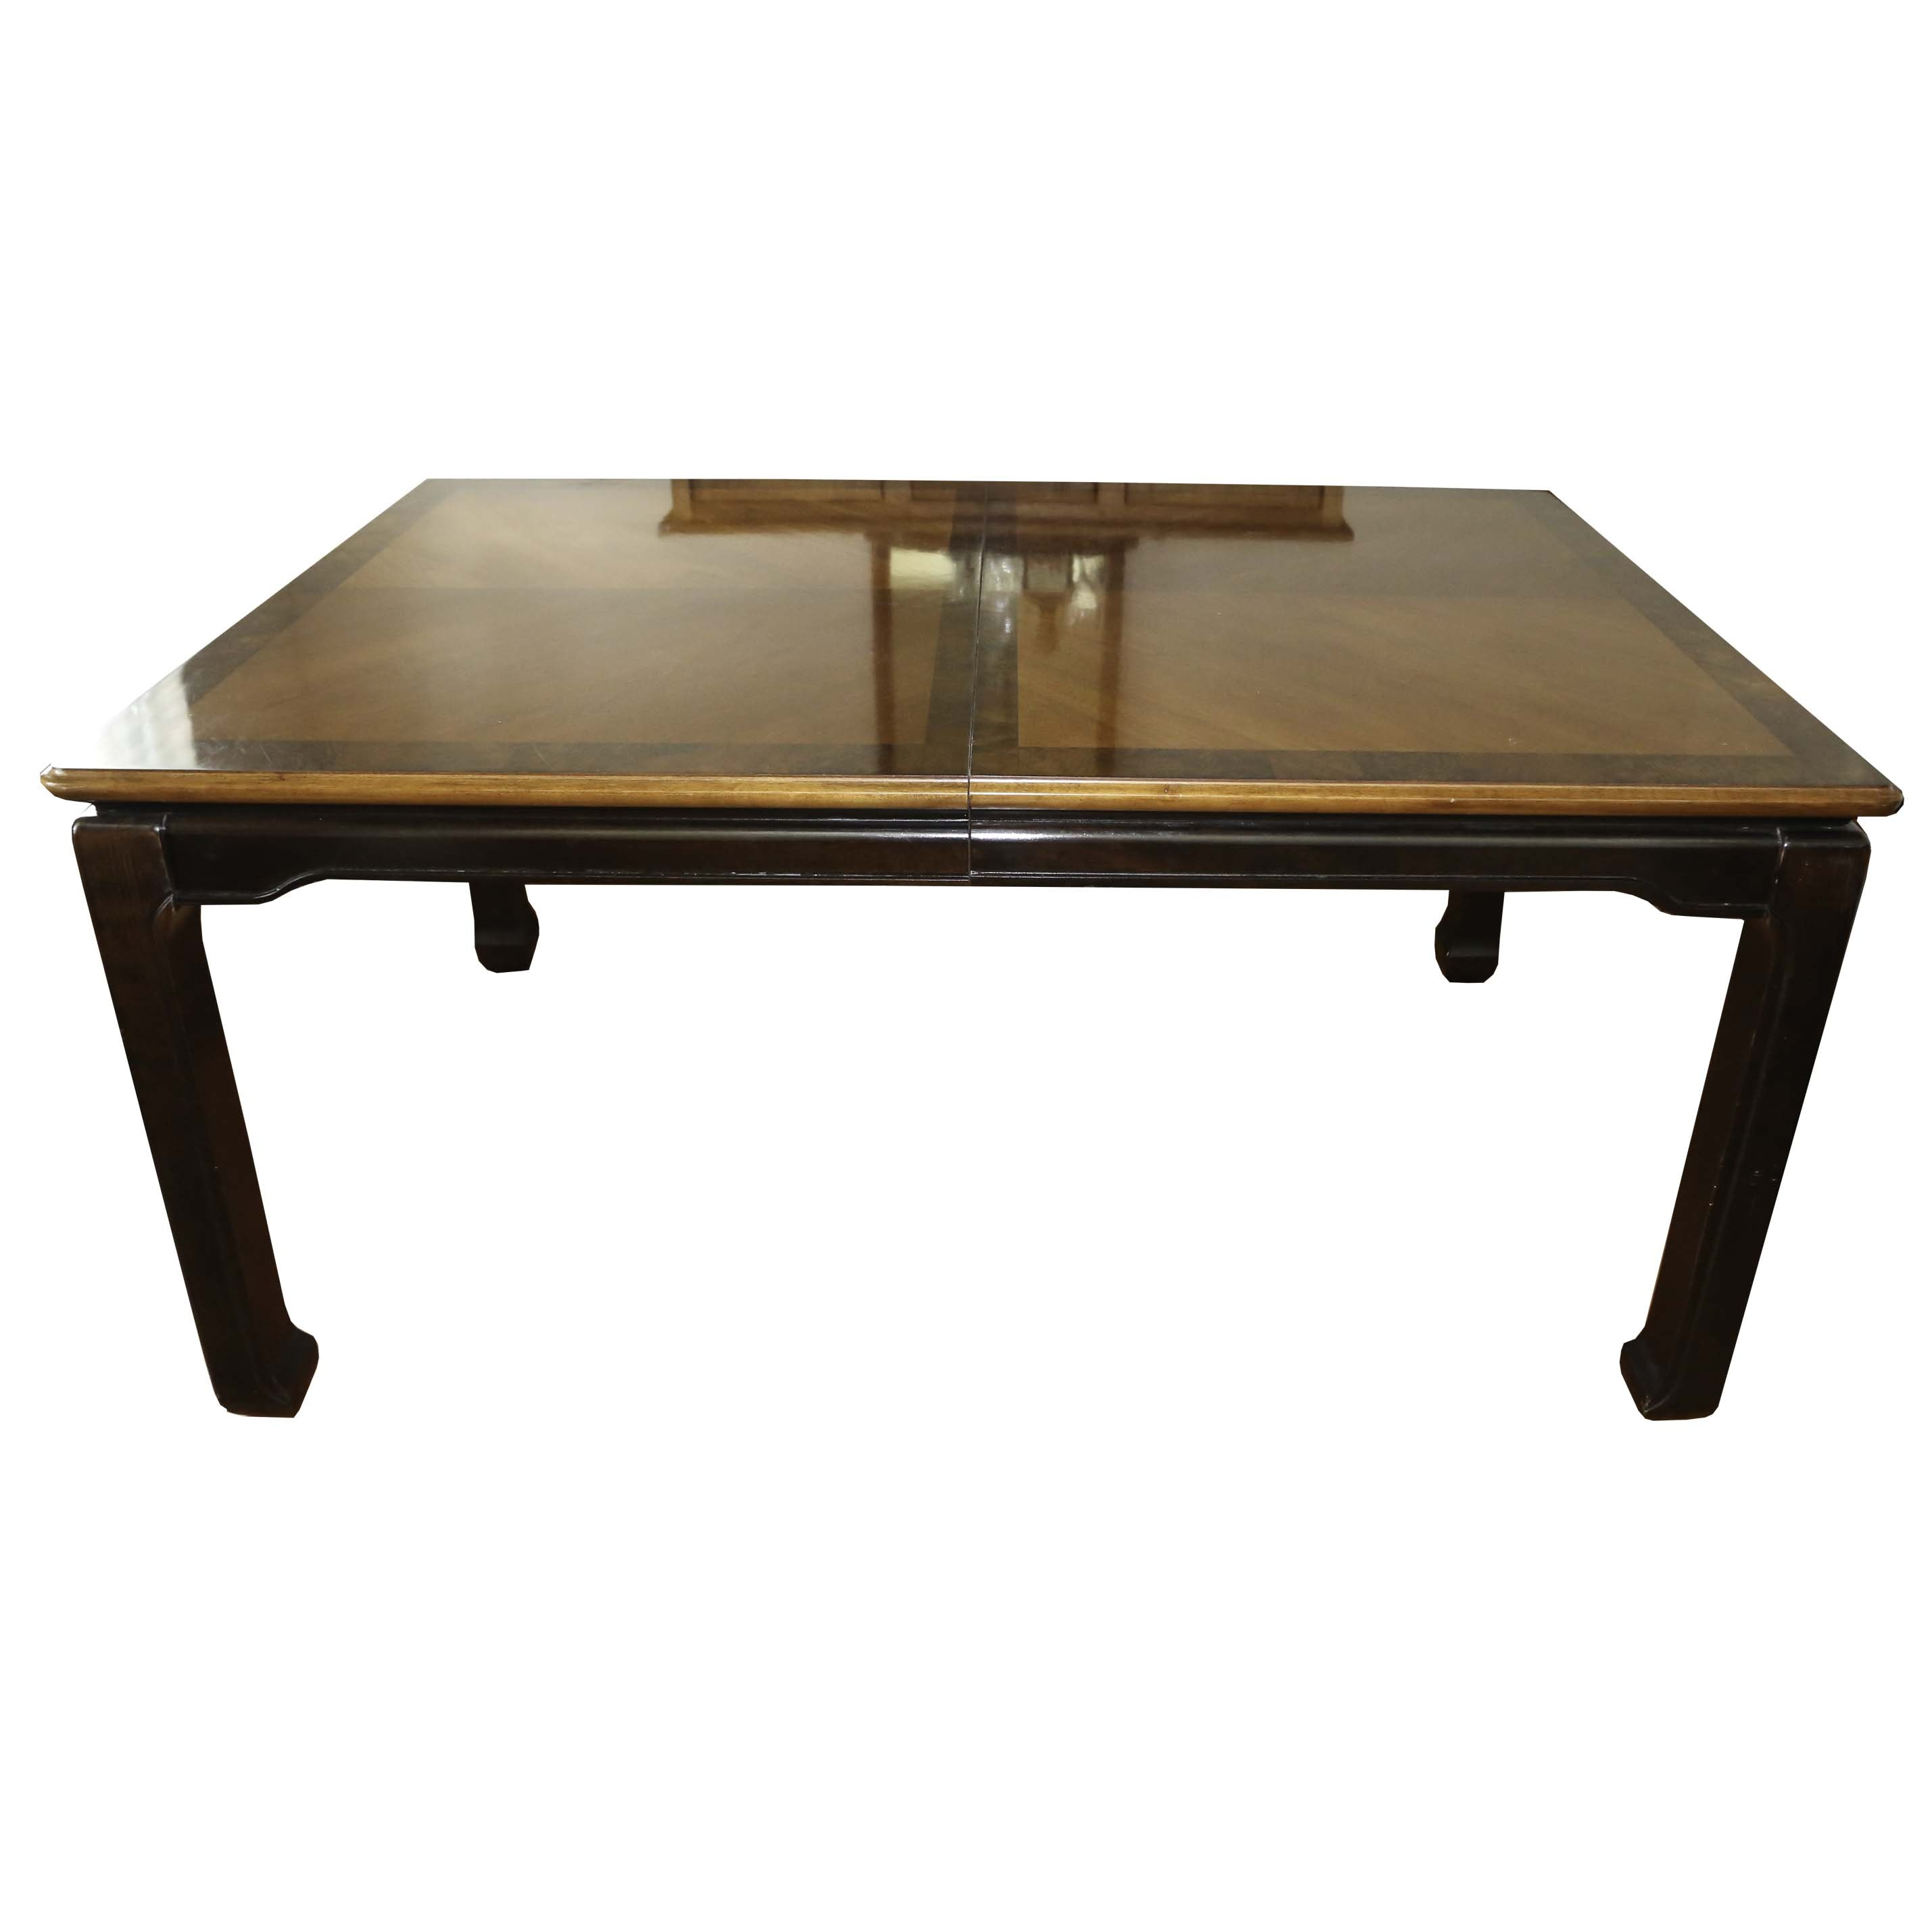 Ming Style Extendable Dining Table